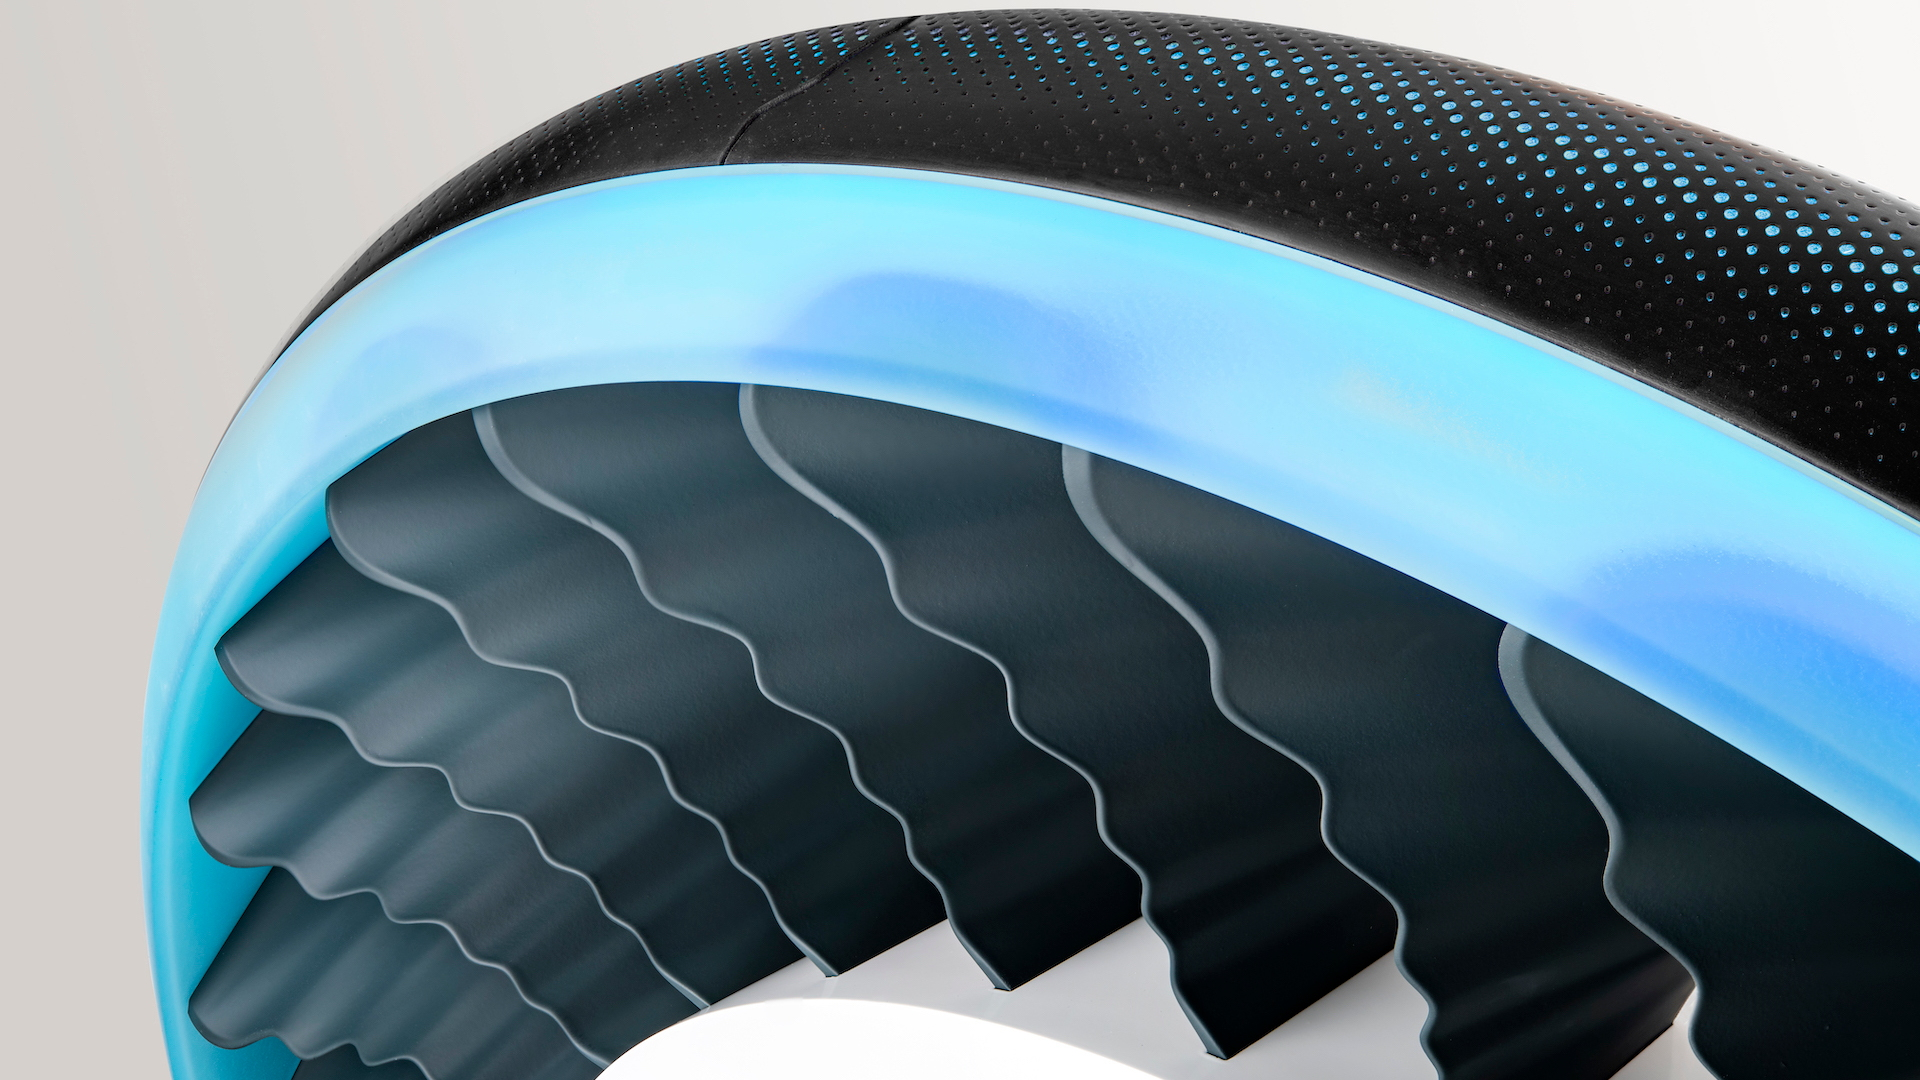 Goodyear Aero tire concept for flying cars